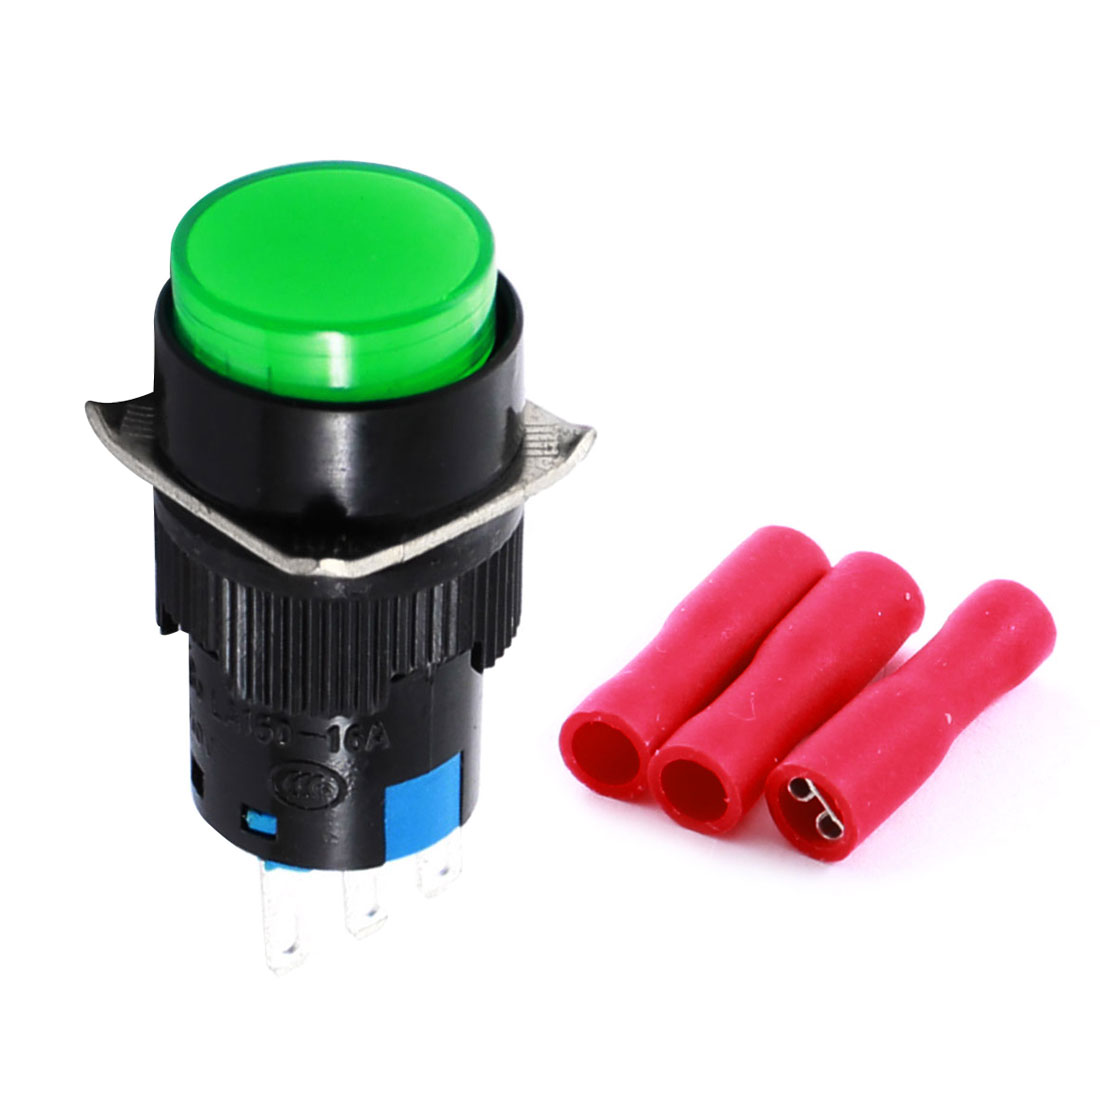 Green 16mm Threaded Panel Mounted SPDT Momentary Round Pushbutton Switch w 3 x Crimp Terminals